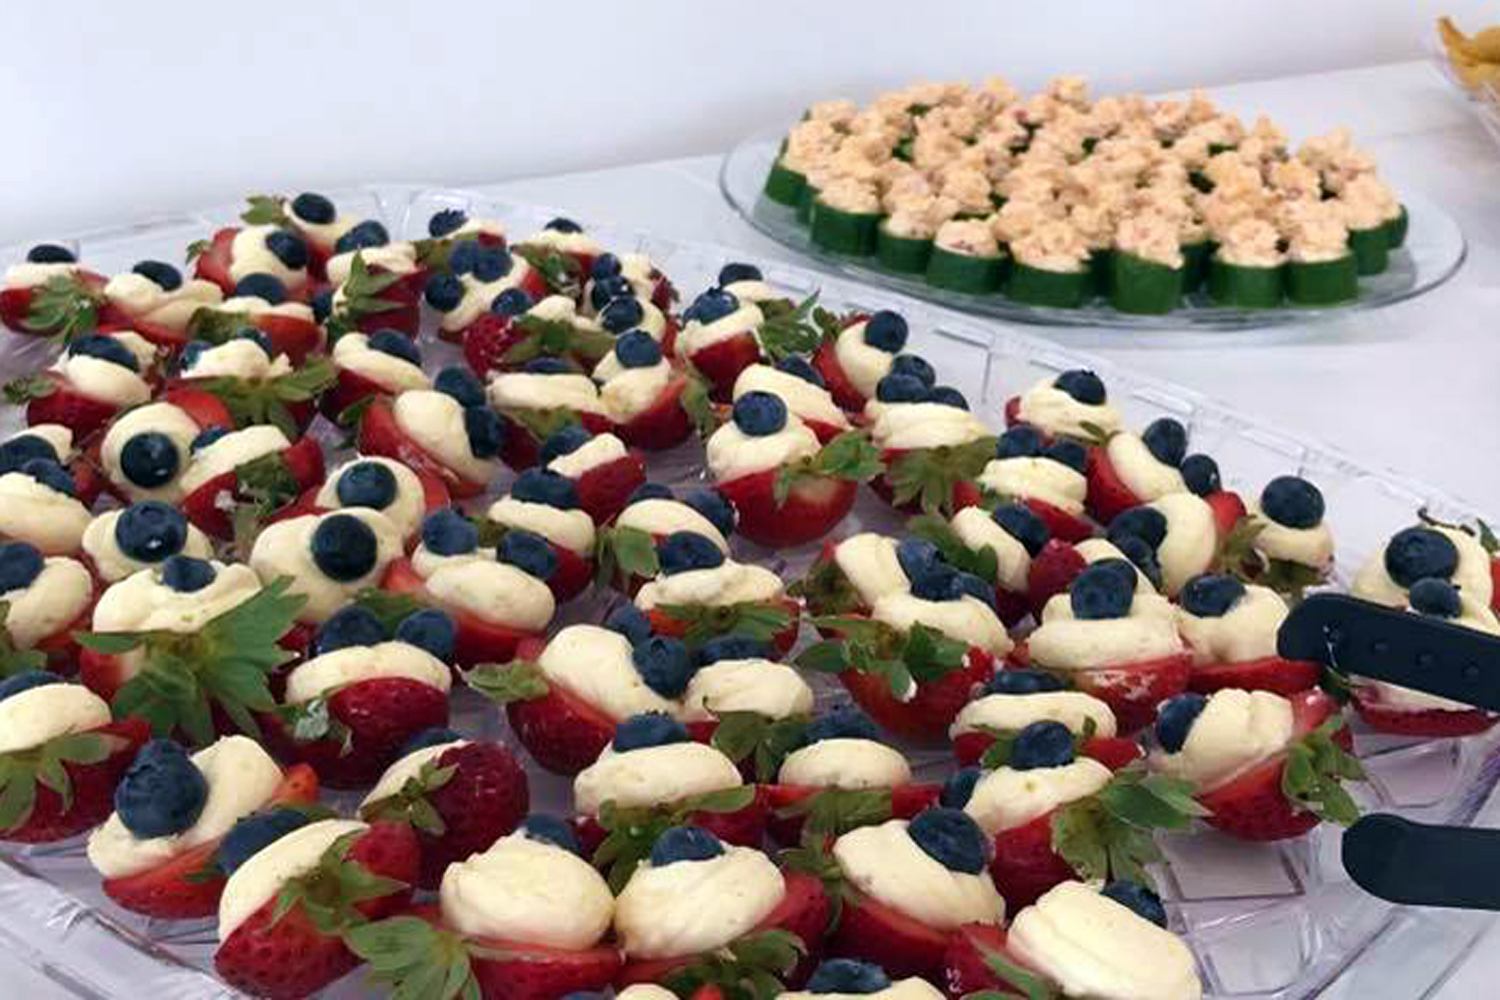 Joan Warren offers catering, baking and personal chef services through